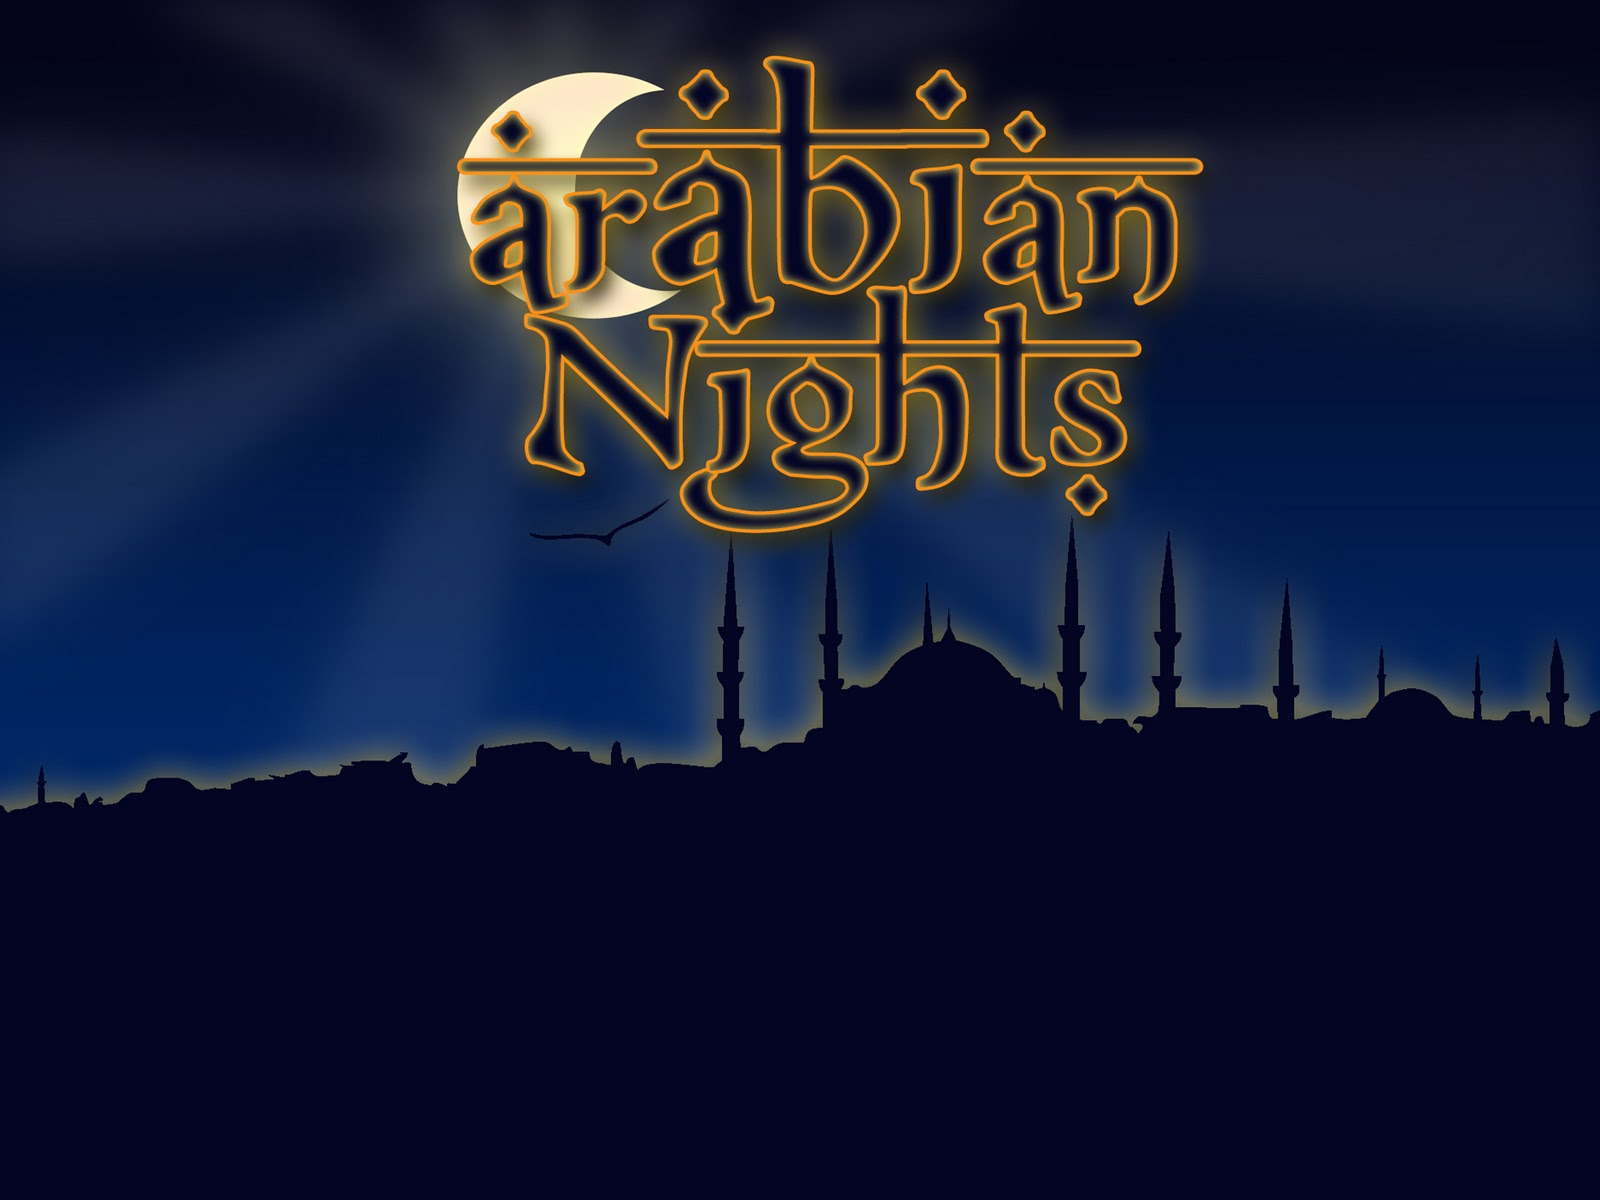 www.arabian nights